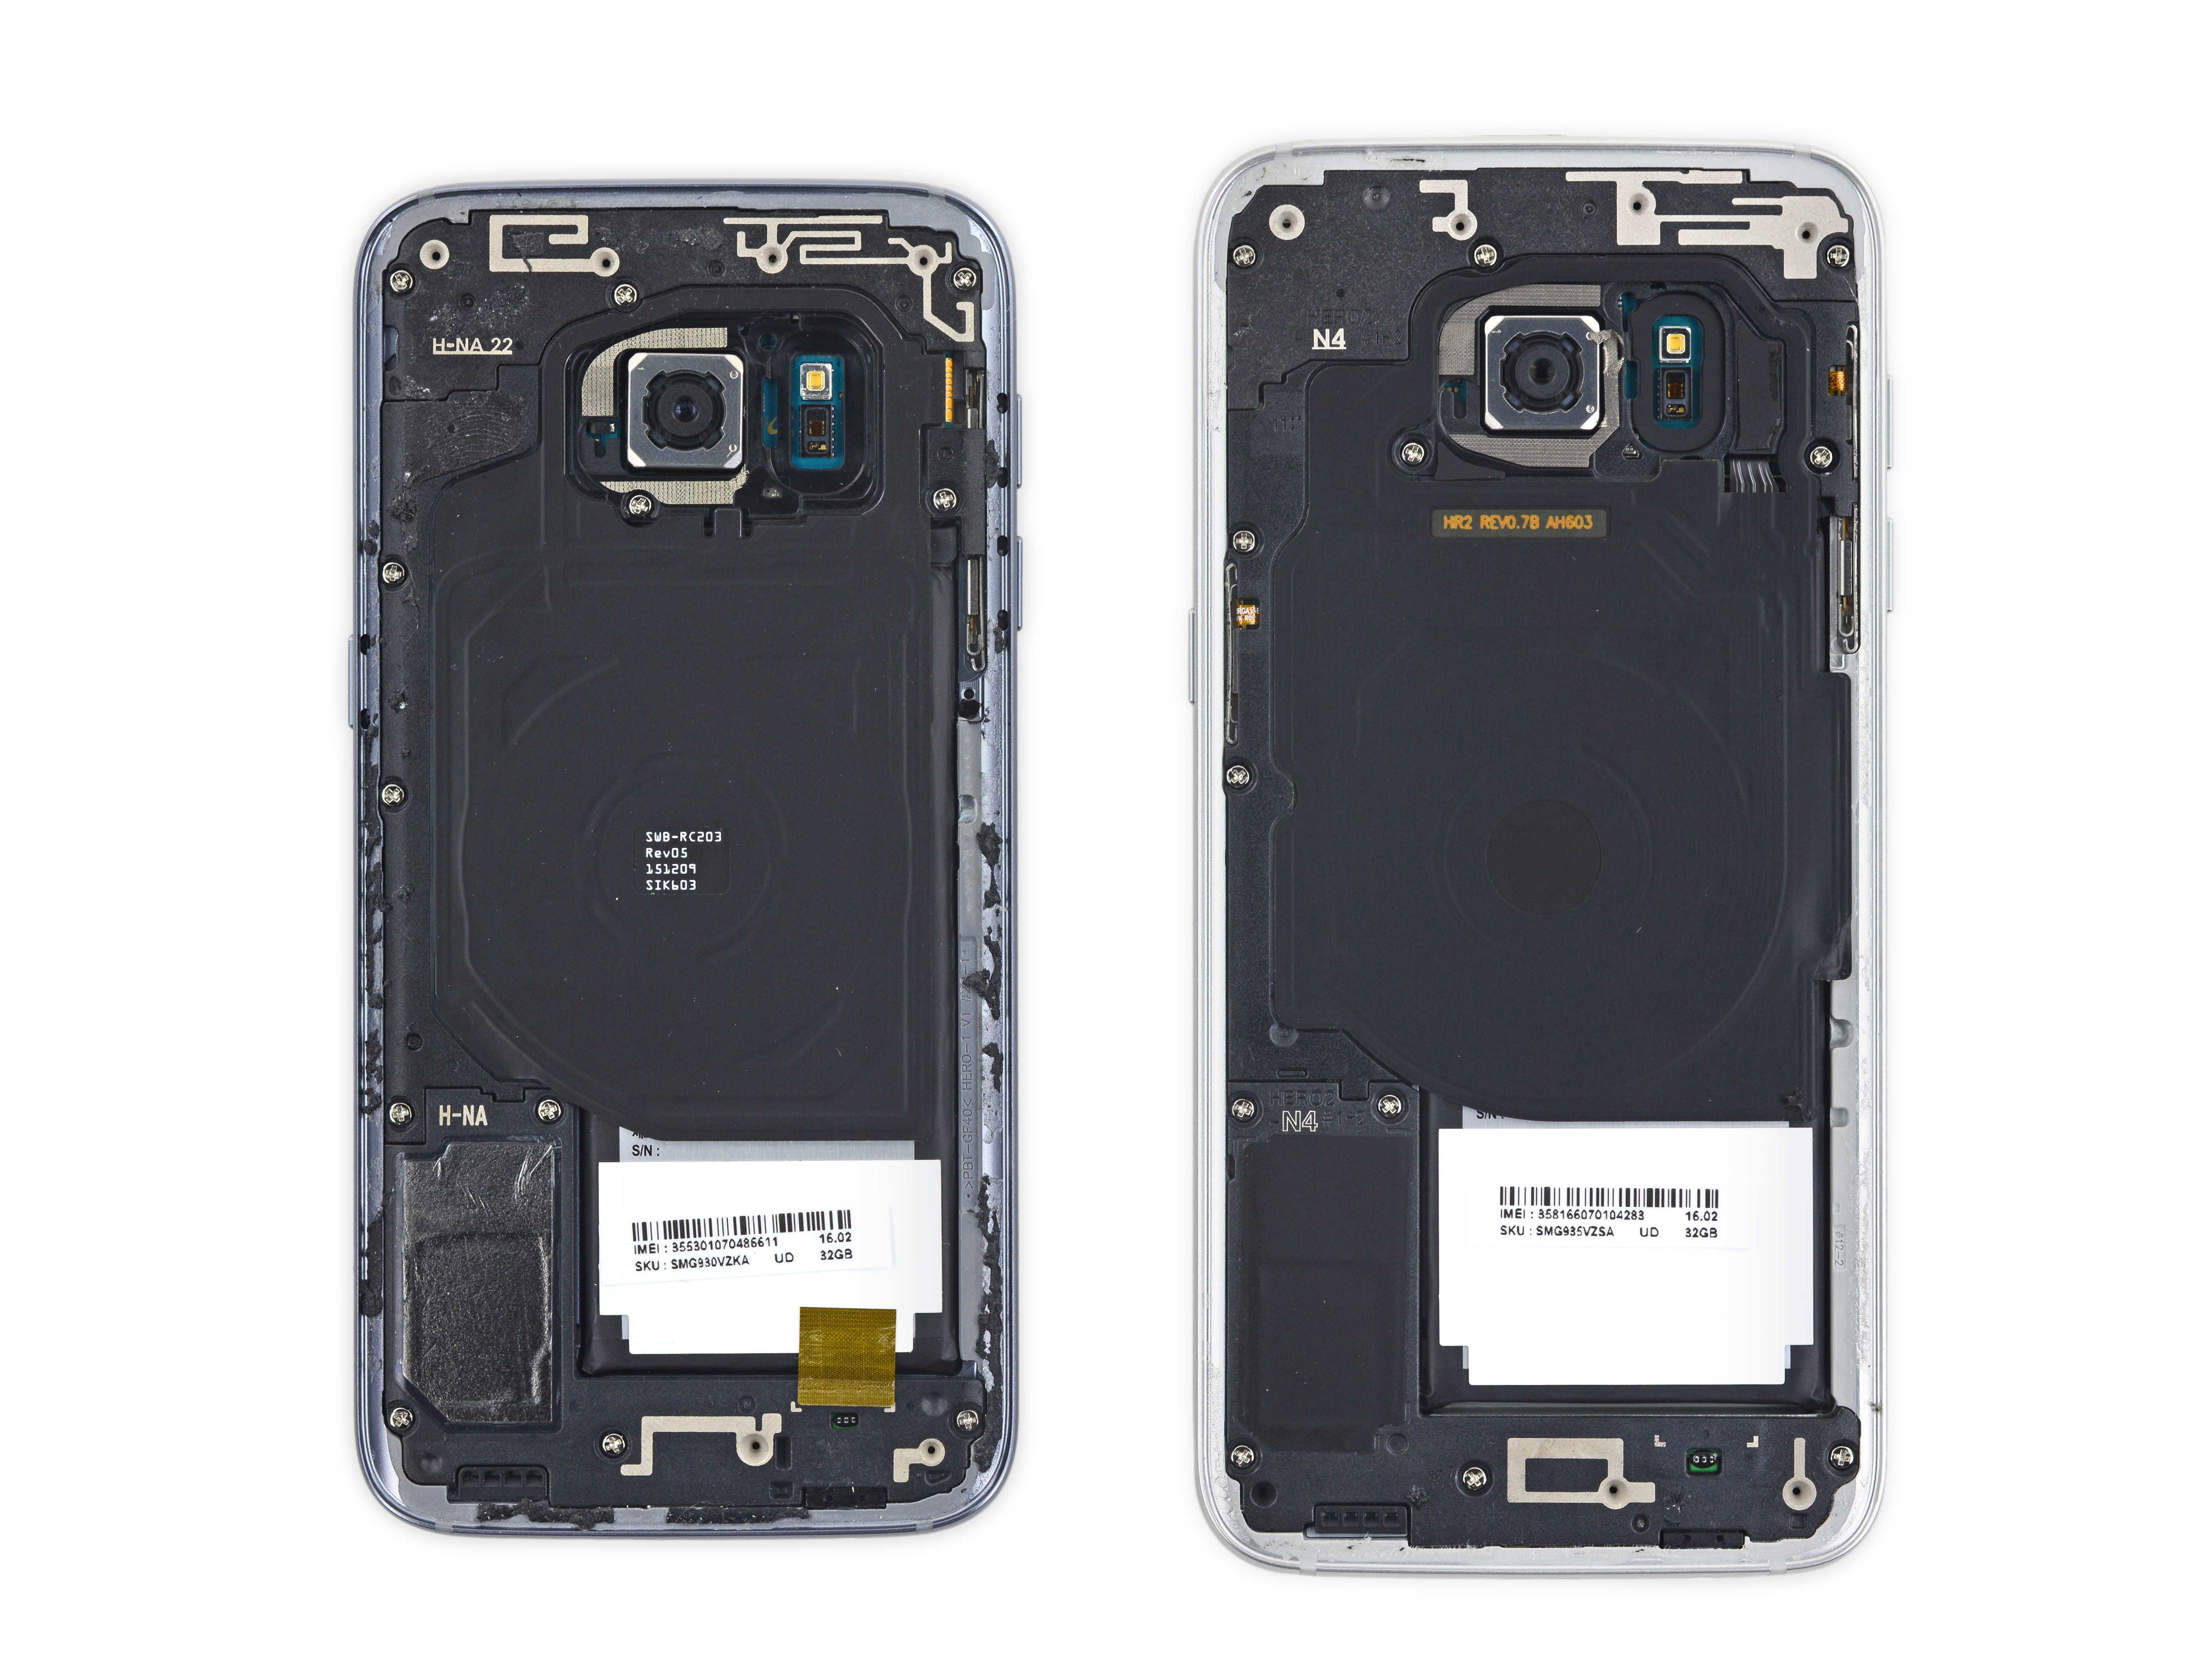 galaxy s7 edge gets the teardown treatment from ifixit sammobile sammobile. Black Bedroom Furniture Sets. Home Design Ideas